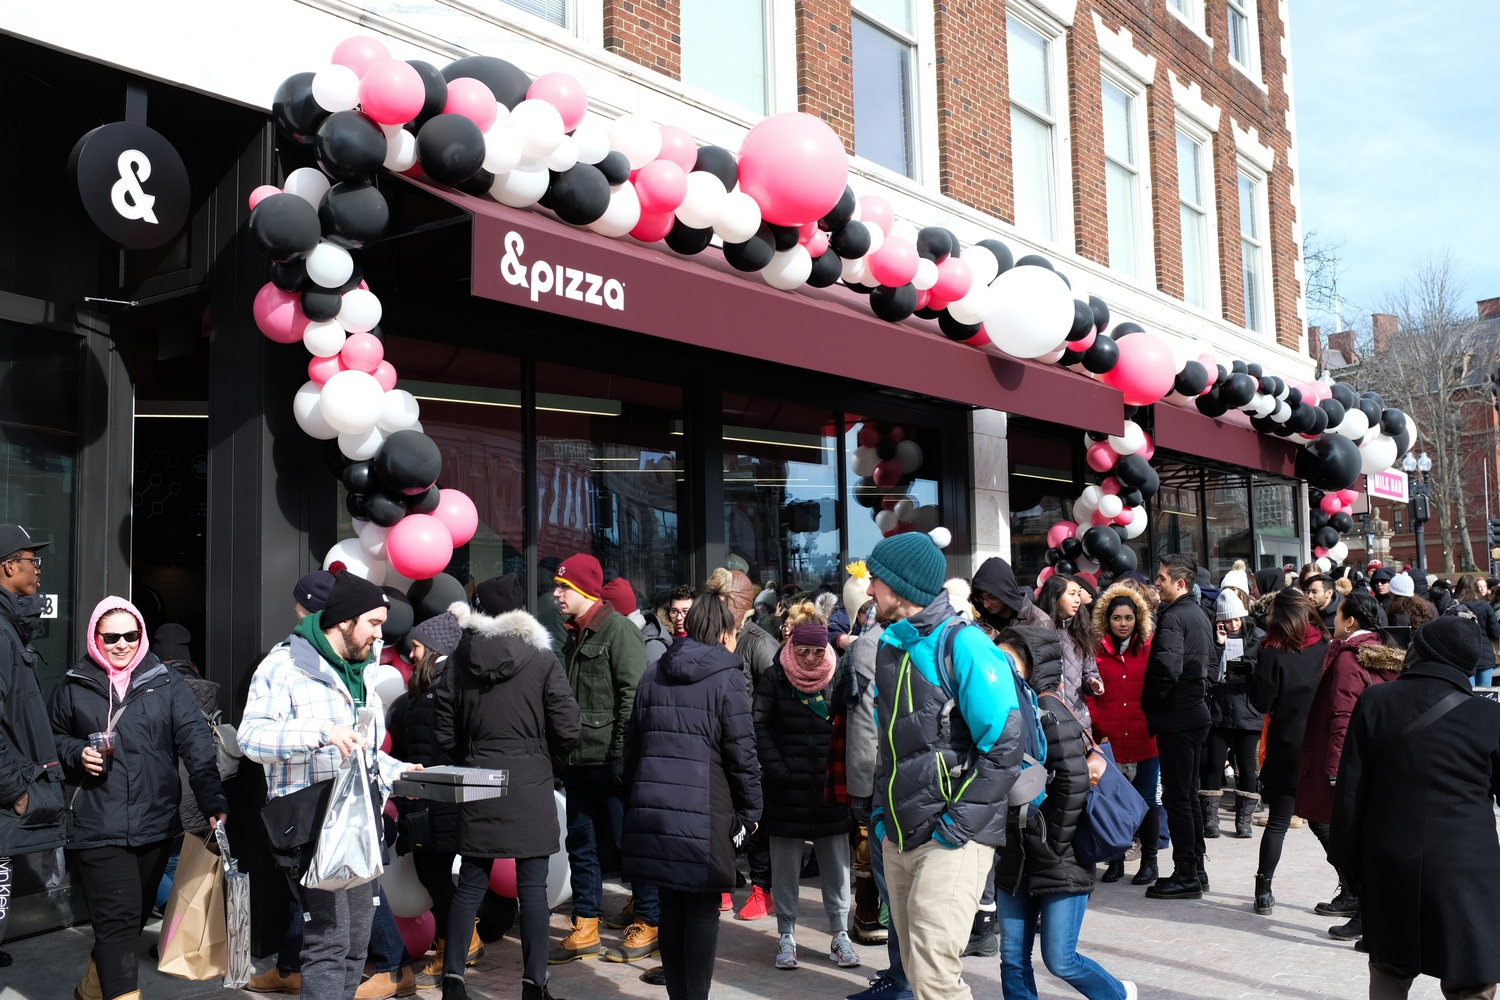 Hundreds lined up for the grand opening of Milk Bar and &pizza on Saturday, some waiting for hours to get in.